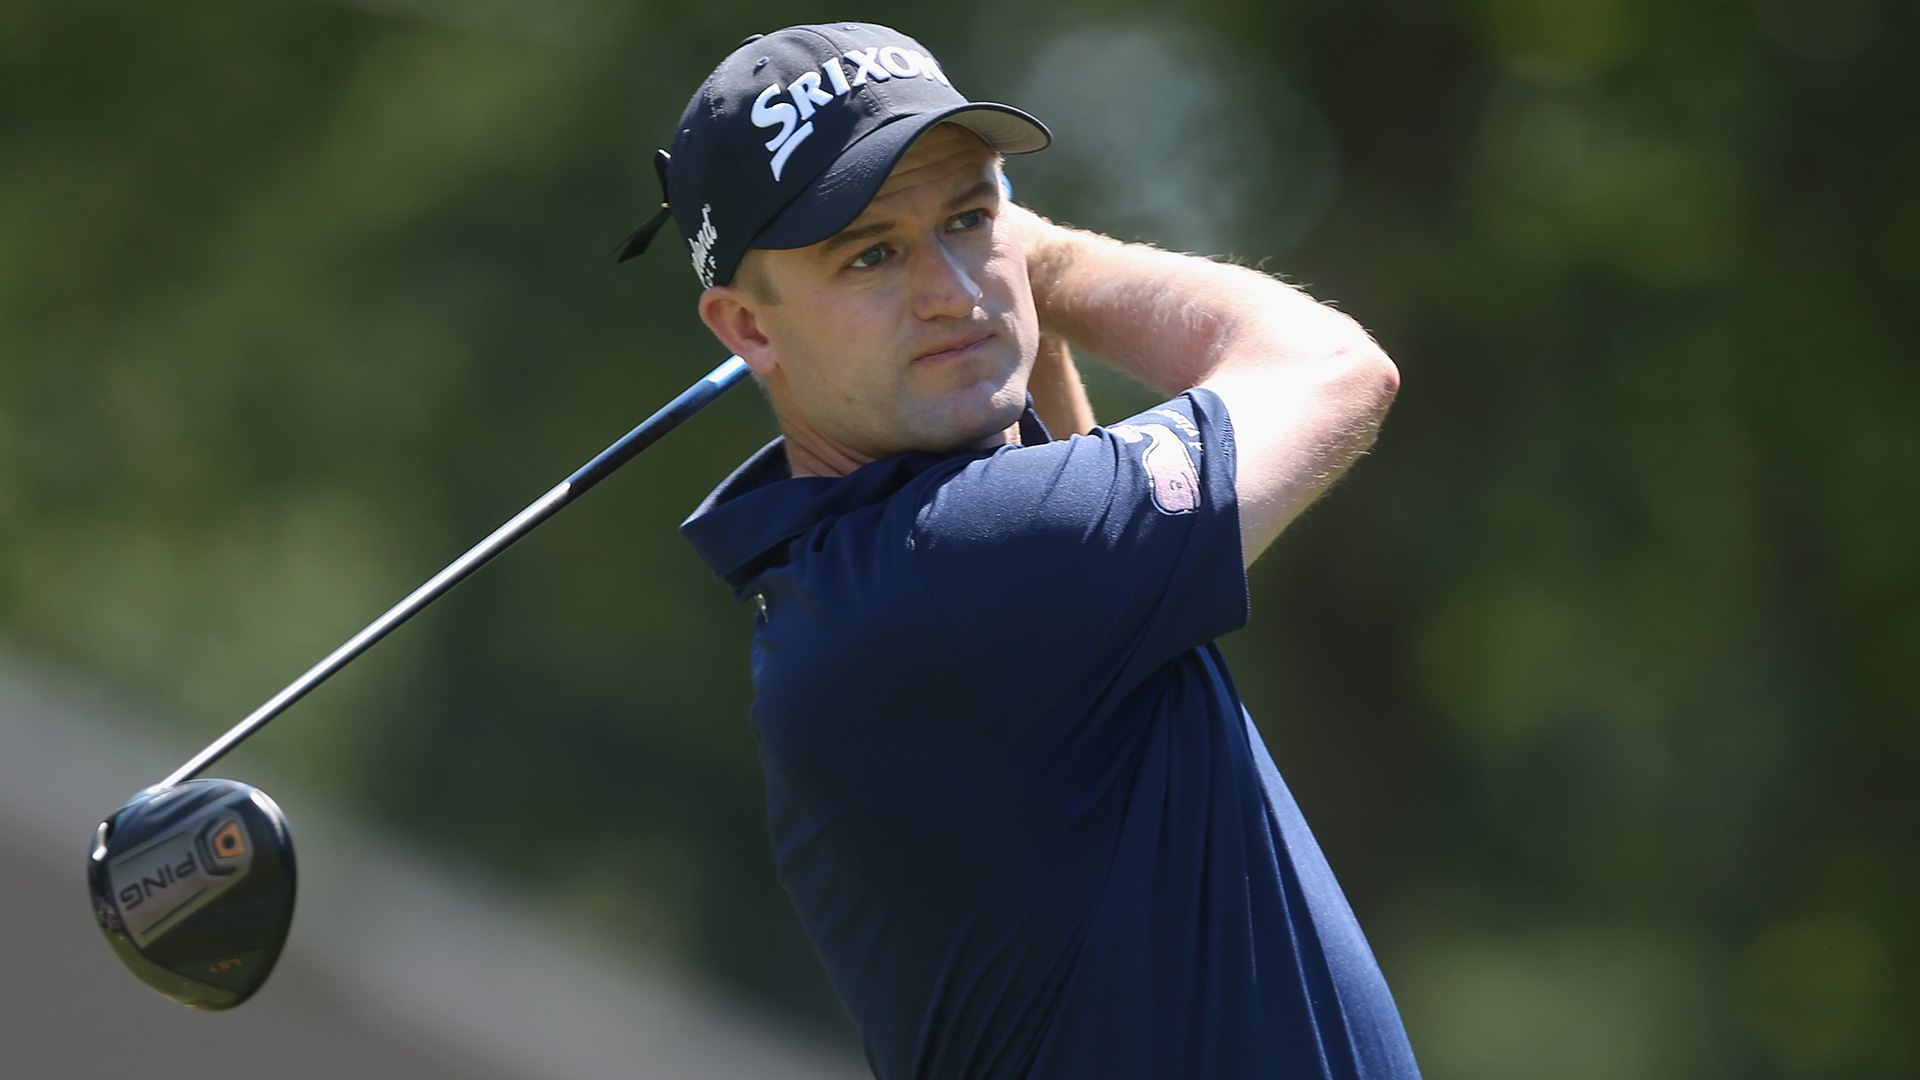 Russell Knox WITB - Winning Clubs - National Club Golfer